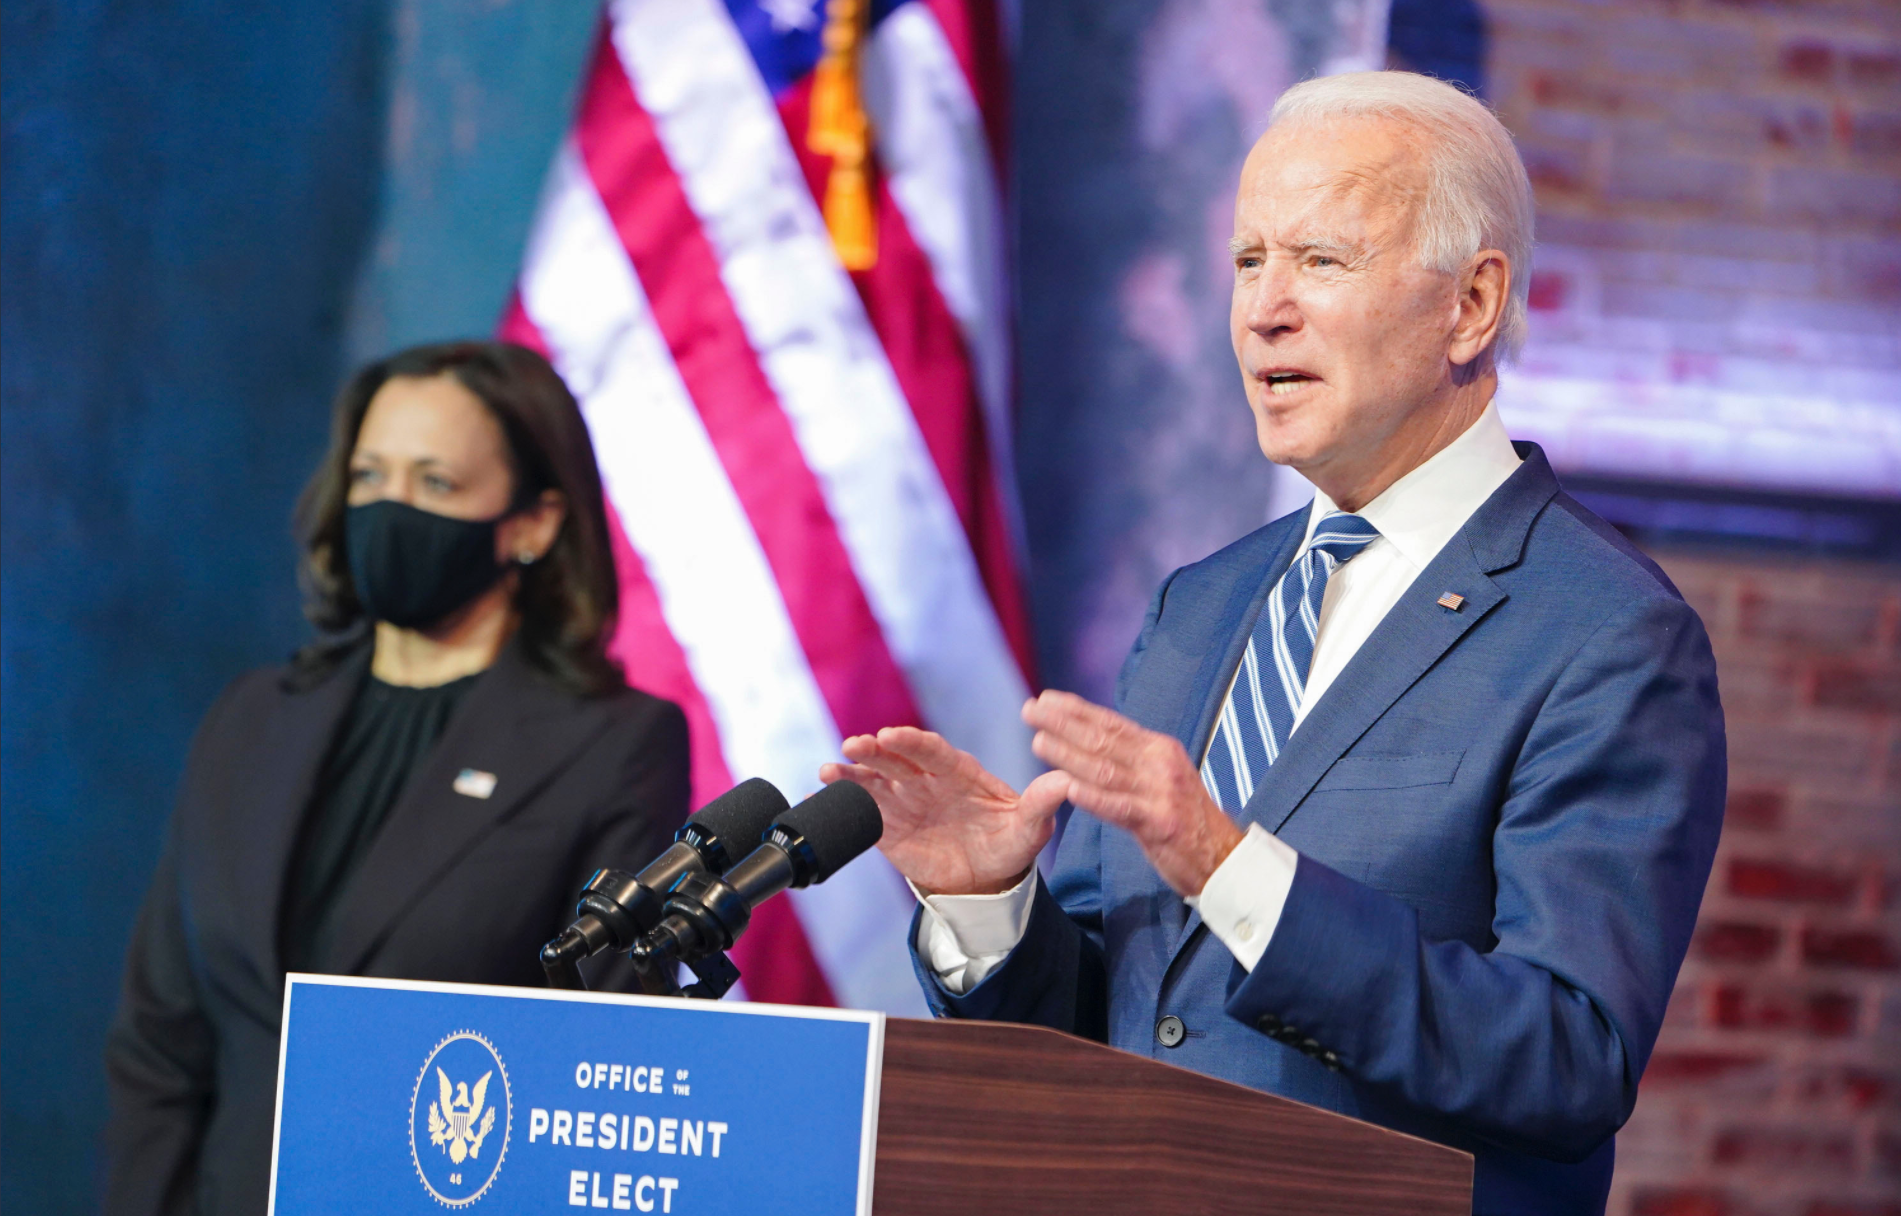 Biden and Harris Speak About Immigration in 2021